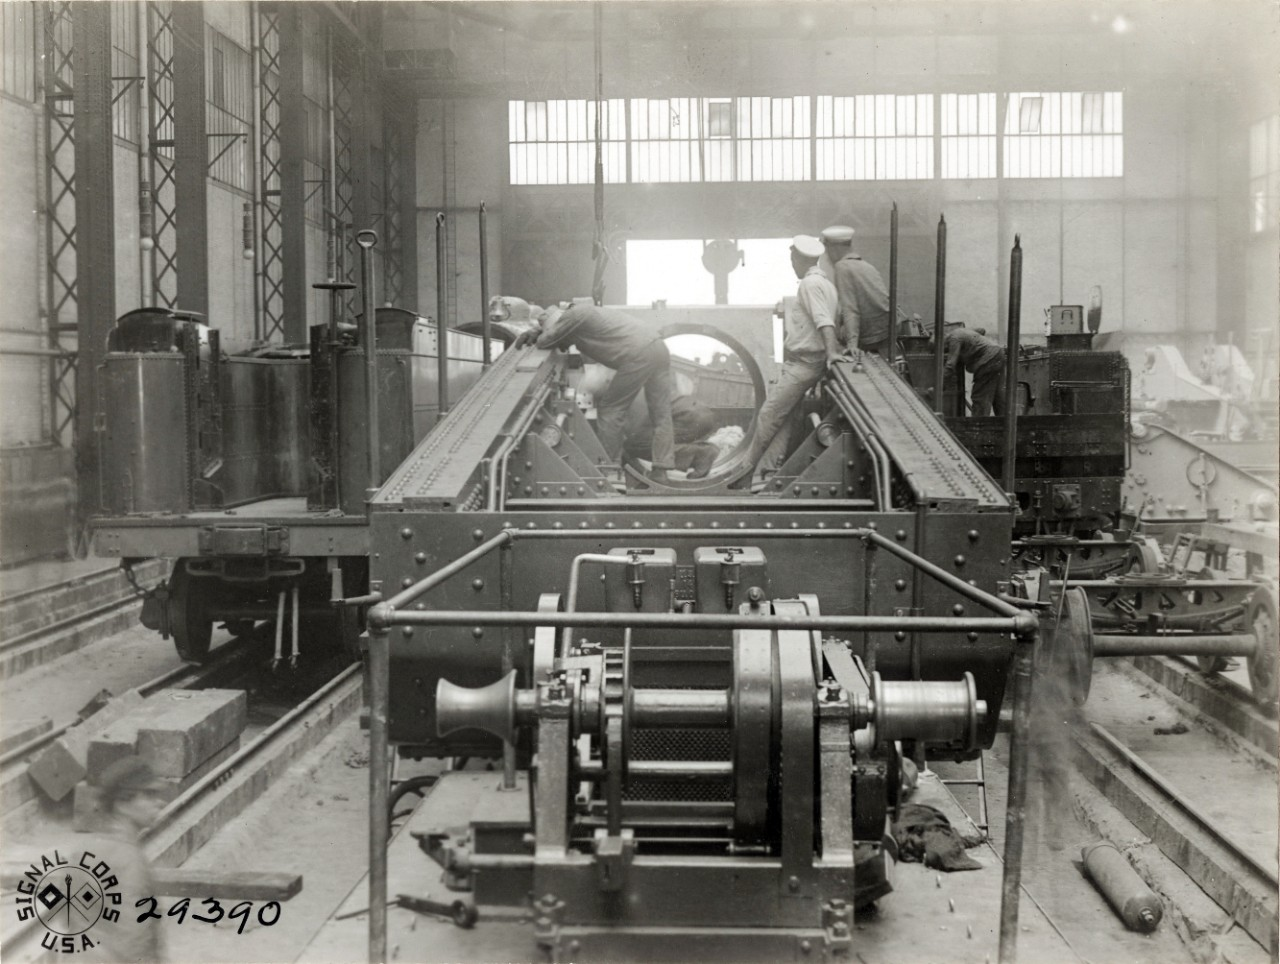 111-SC-29390: 14-Inch Railway Gun.  Men greasing the slide to receive the rifle at U.S. Naval Railway Battery, St. Nazaire, France.   Photographed by Corporal L.H. McLaughlin, SC, August 1, 1918.    U.S. Army Signal Corps Photograph, now in the collections of the National Archives.    Archival photograph taken by Mr. James Poynor.